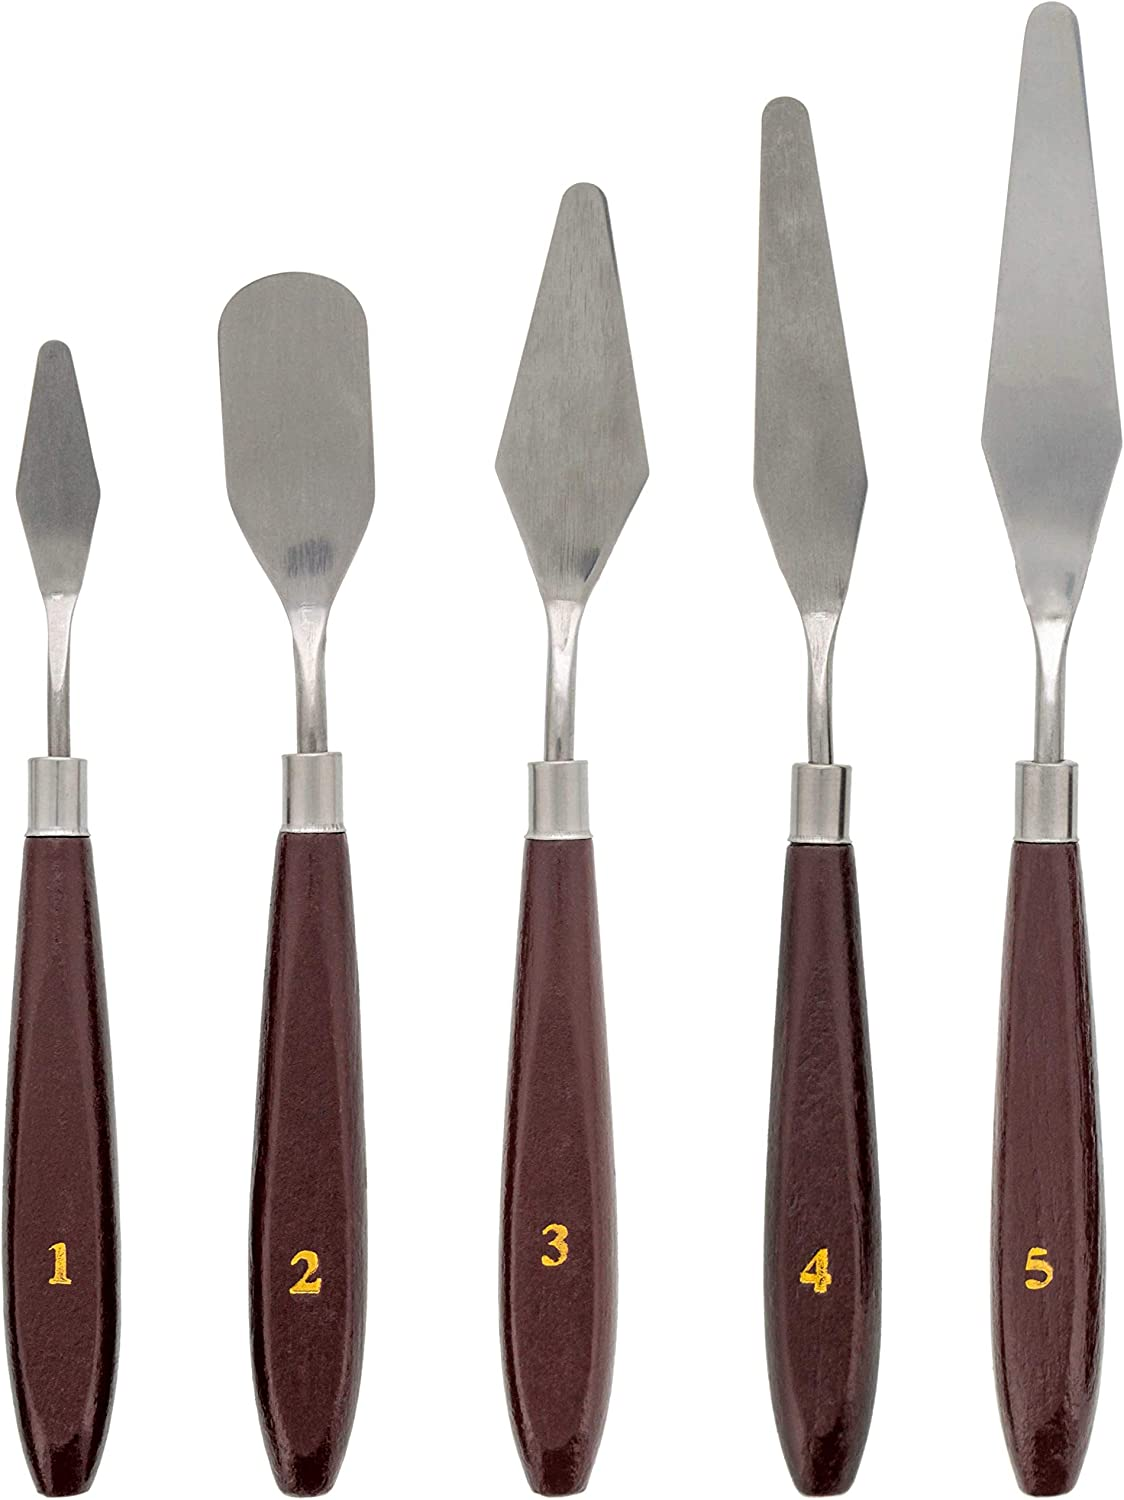 US Art Supply 5 Piece Stainless Steel Palette Knife Set - Thin & Flexible Spatulas & Painting Knives for All Oil or Acrylic Painting & Color Mixing and as a 3-D Printer Removal Tool